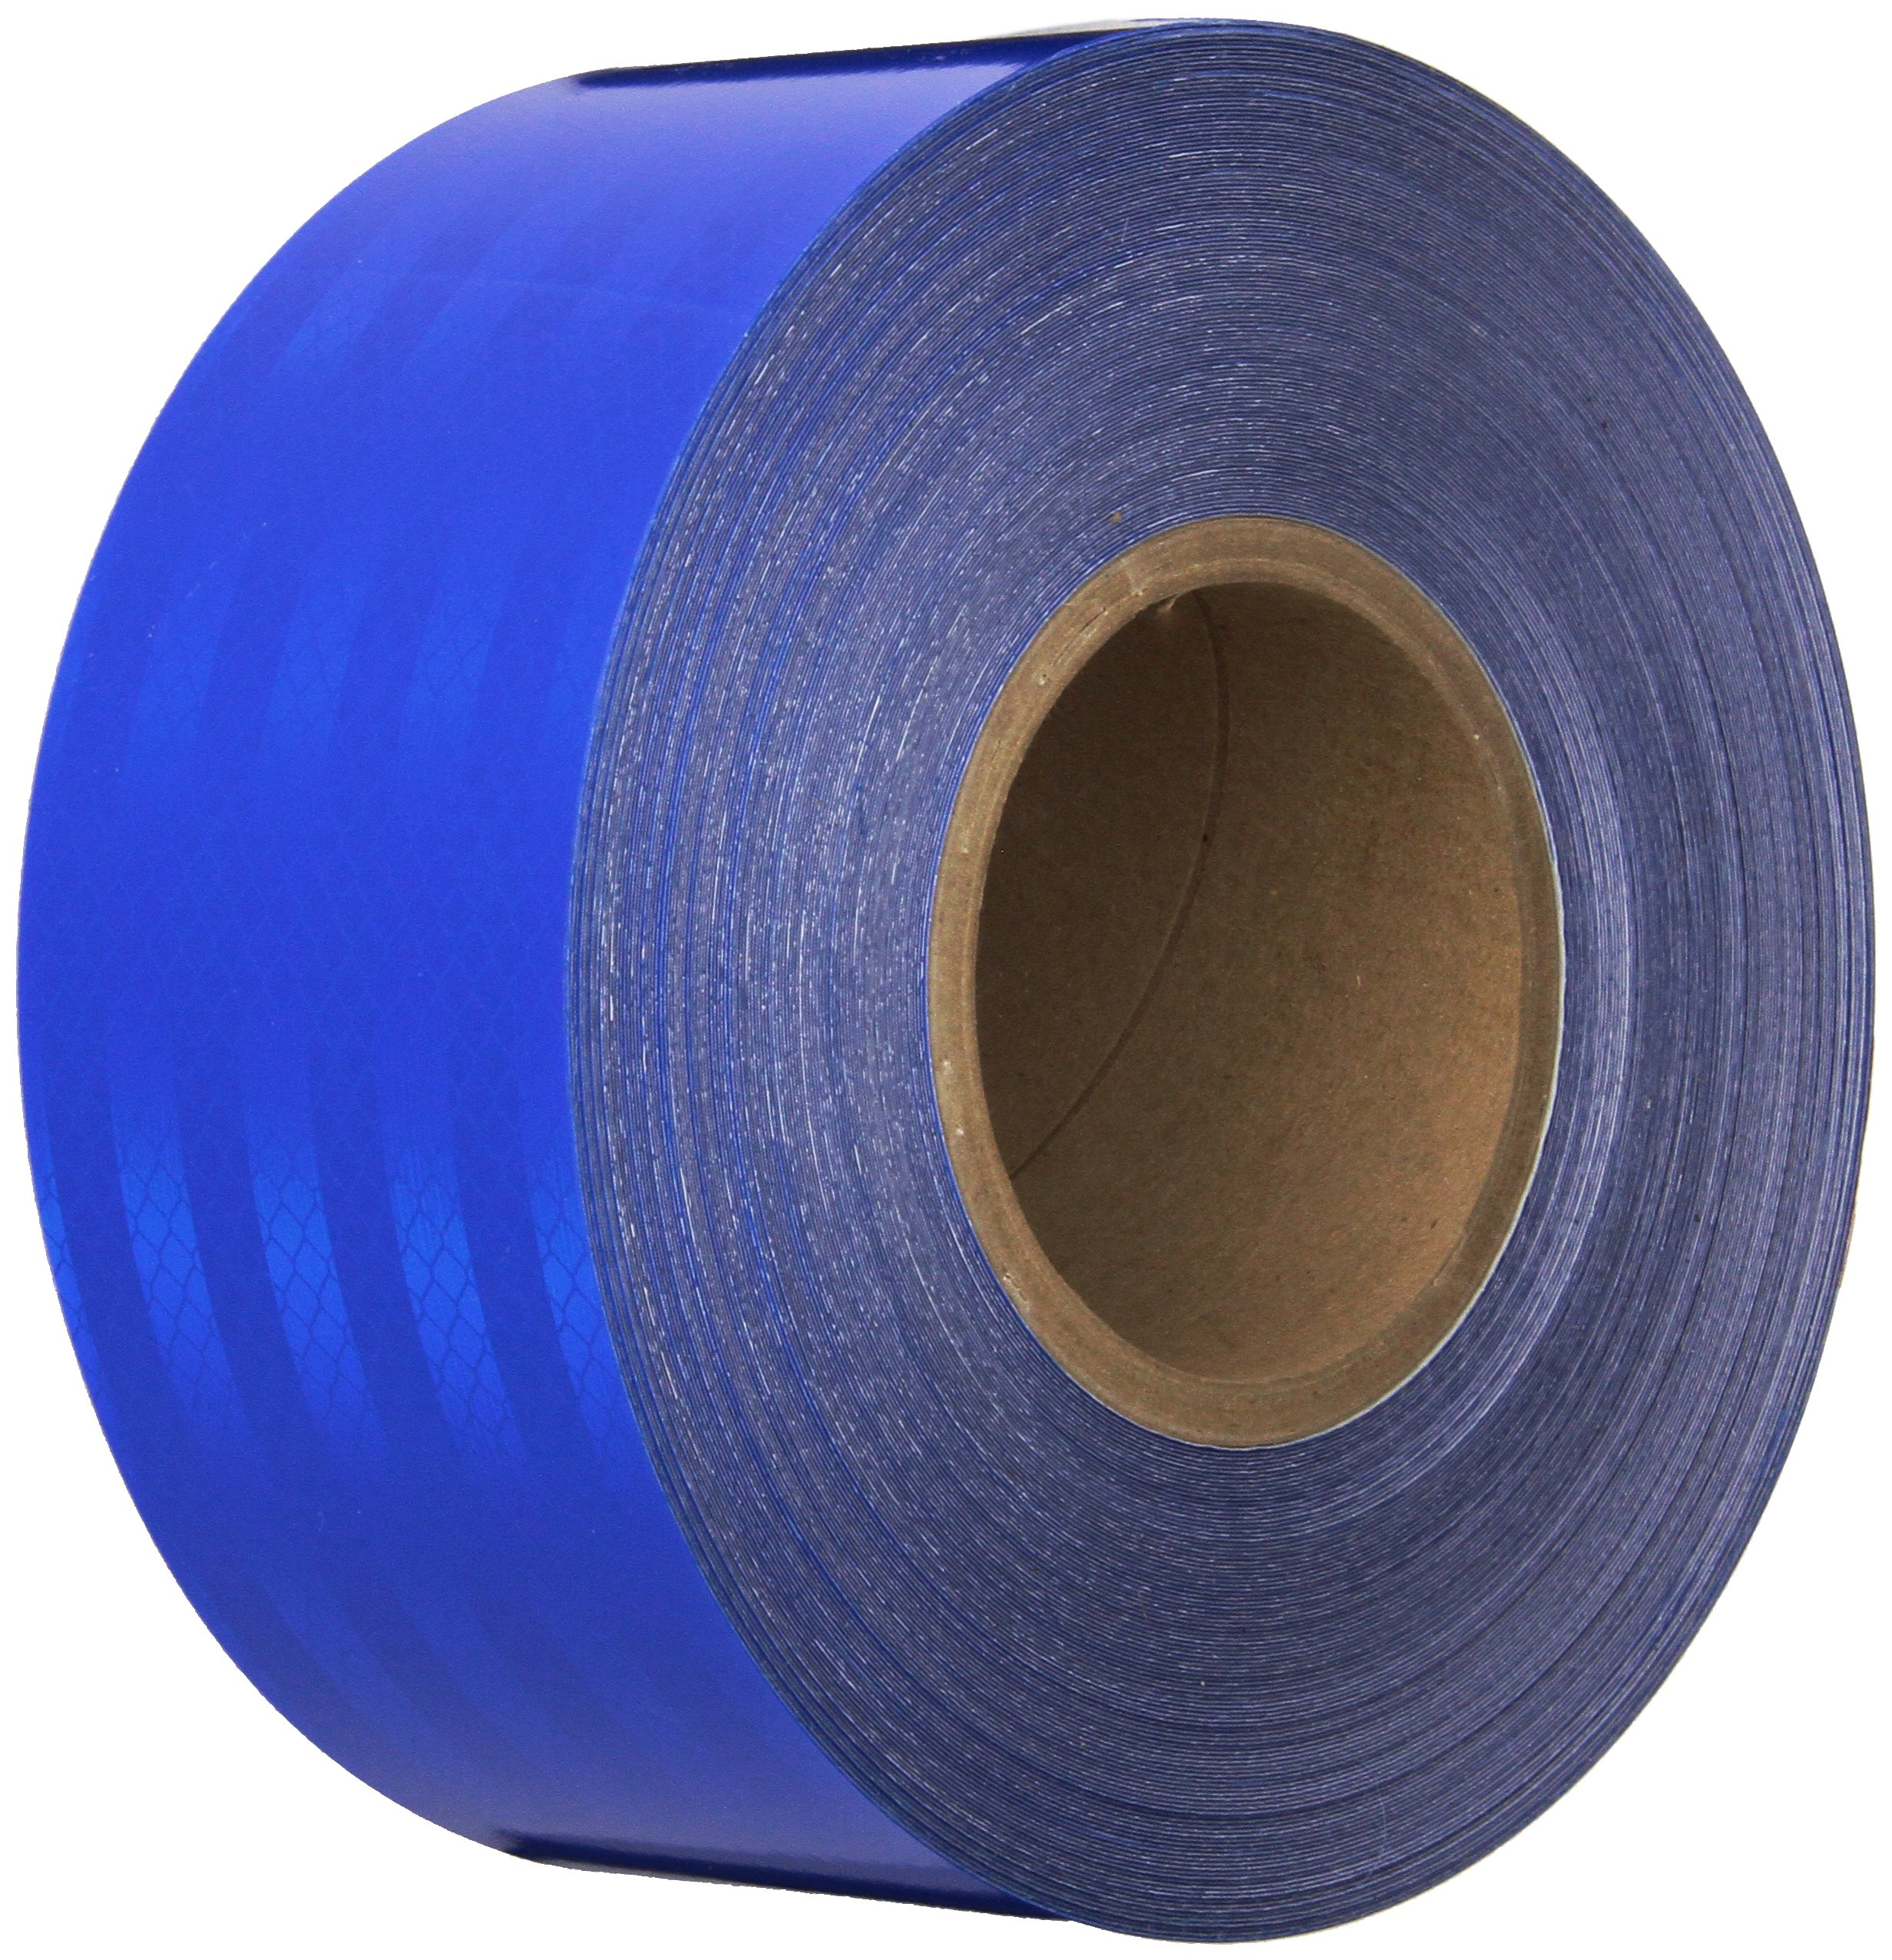 3M 3435 Blue Reflective Tape Roll – 3 in. x 15